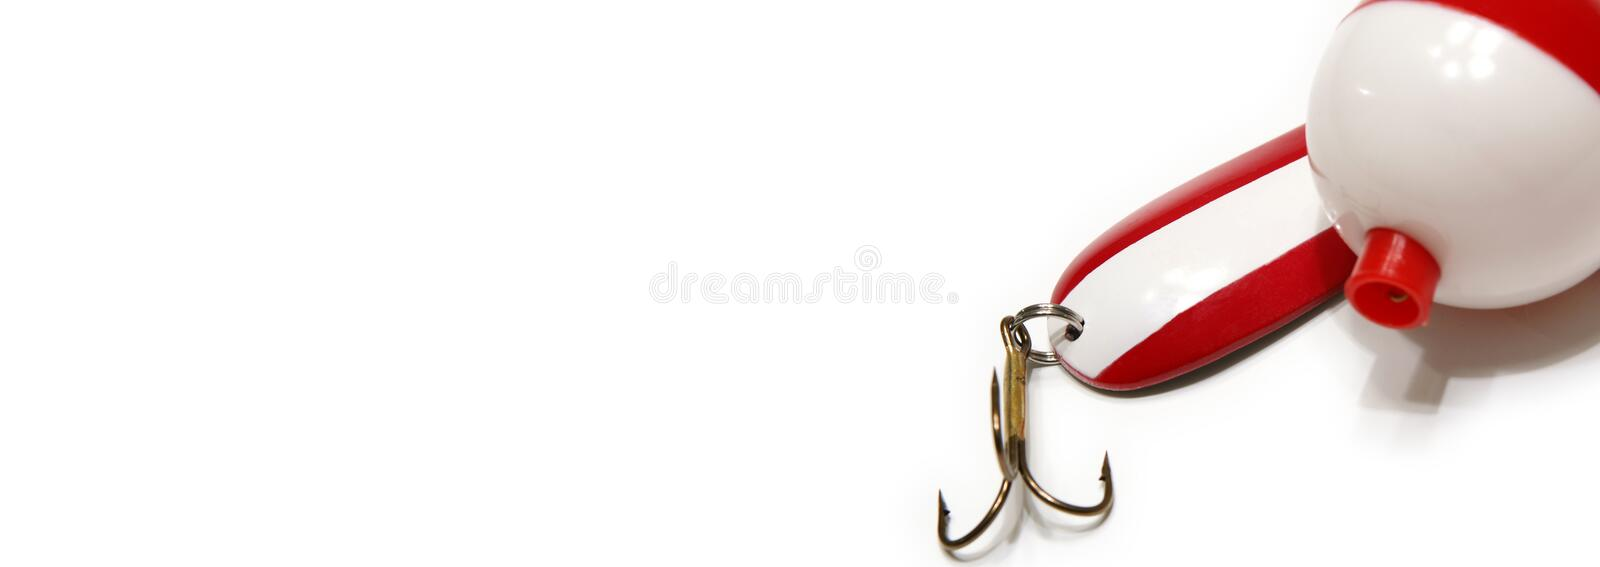 Lure and Bobber Web Banner royalty free stock image